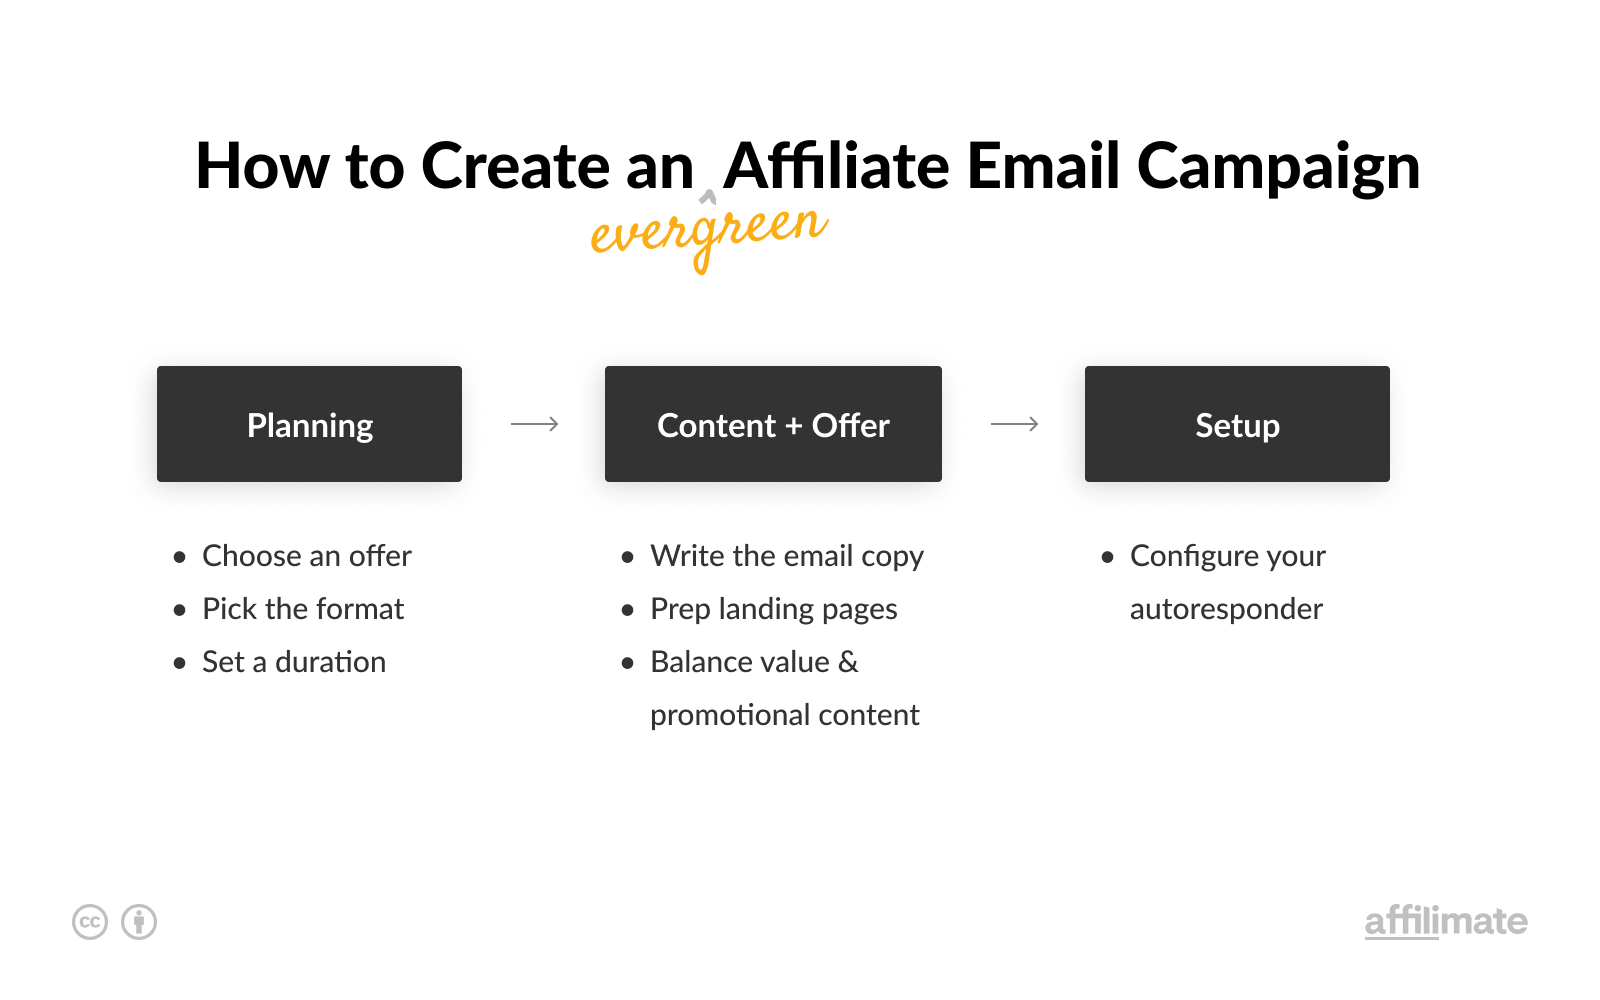 Affiliate Email Campaign